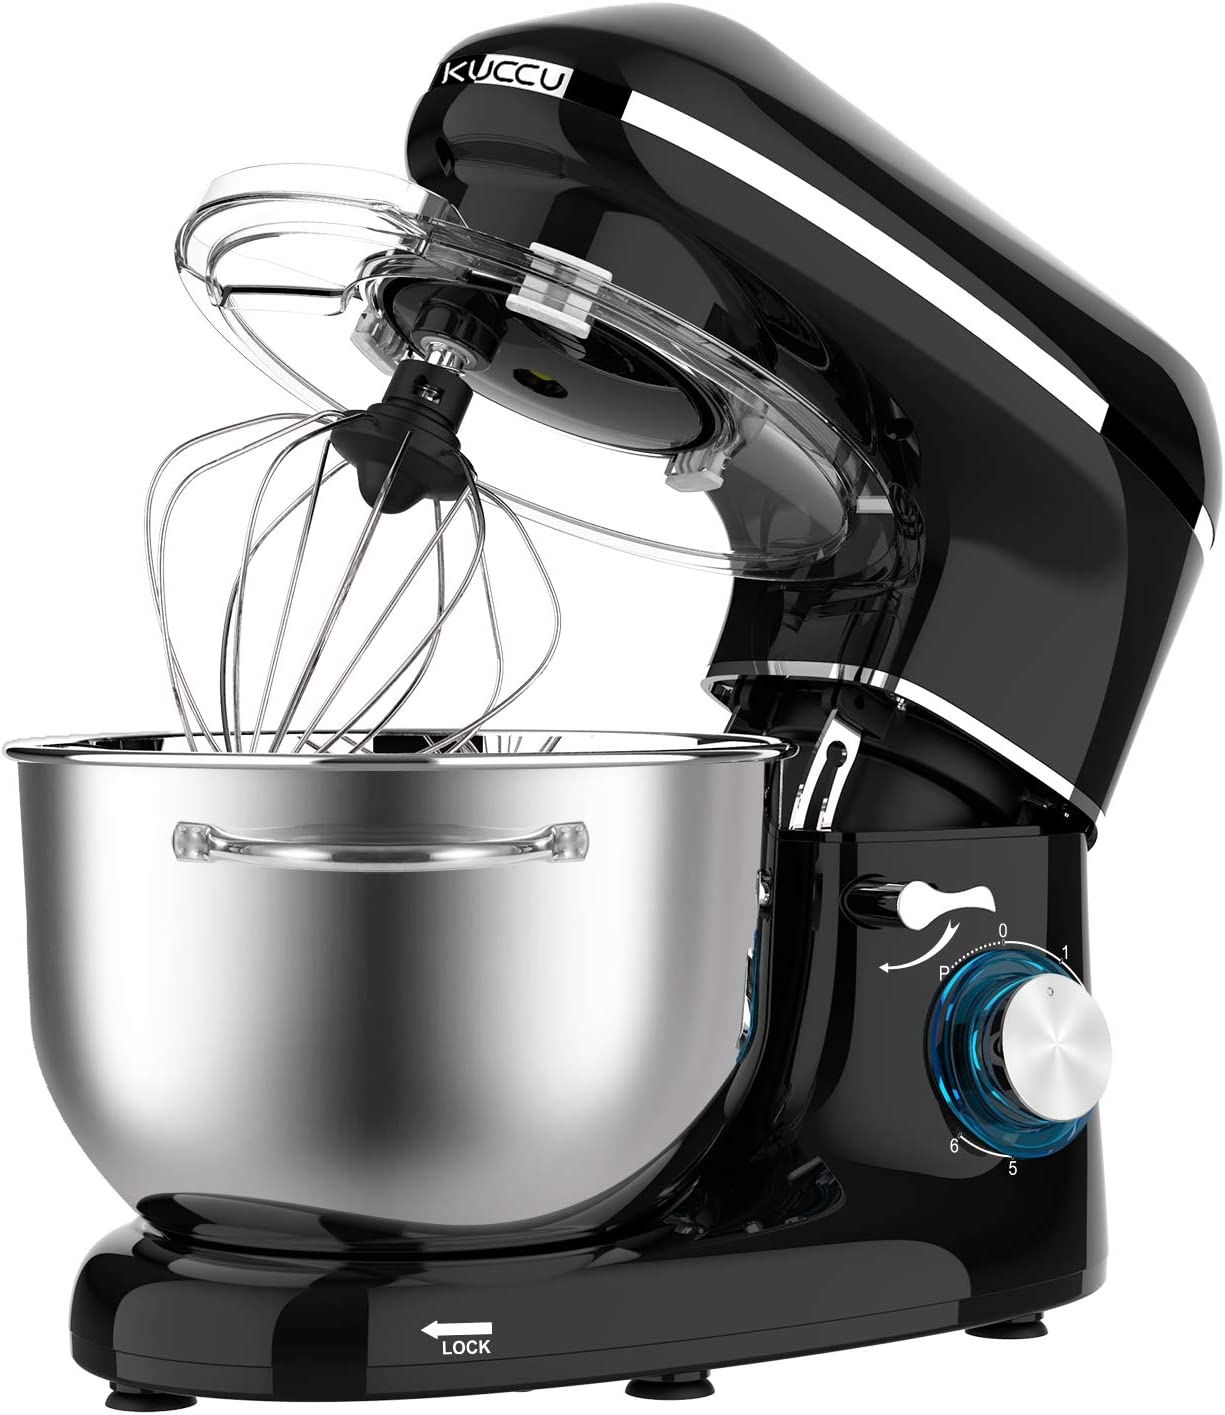 Stand mixer,Kuccu 5.5 Quart Tilt-Head, 660w Electric Kitchen mixer, 6-Speeds With Stainless Steel Bowl,Dough Hook,Whisk, Beater,Egg white separator (5.5-QT, Black)